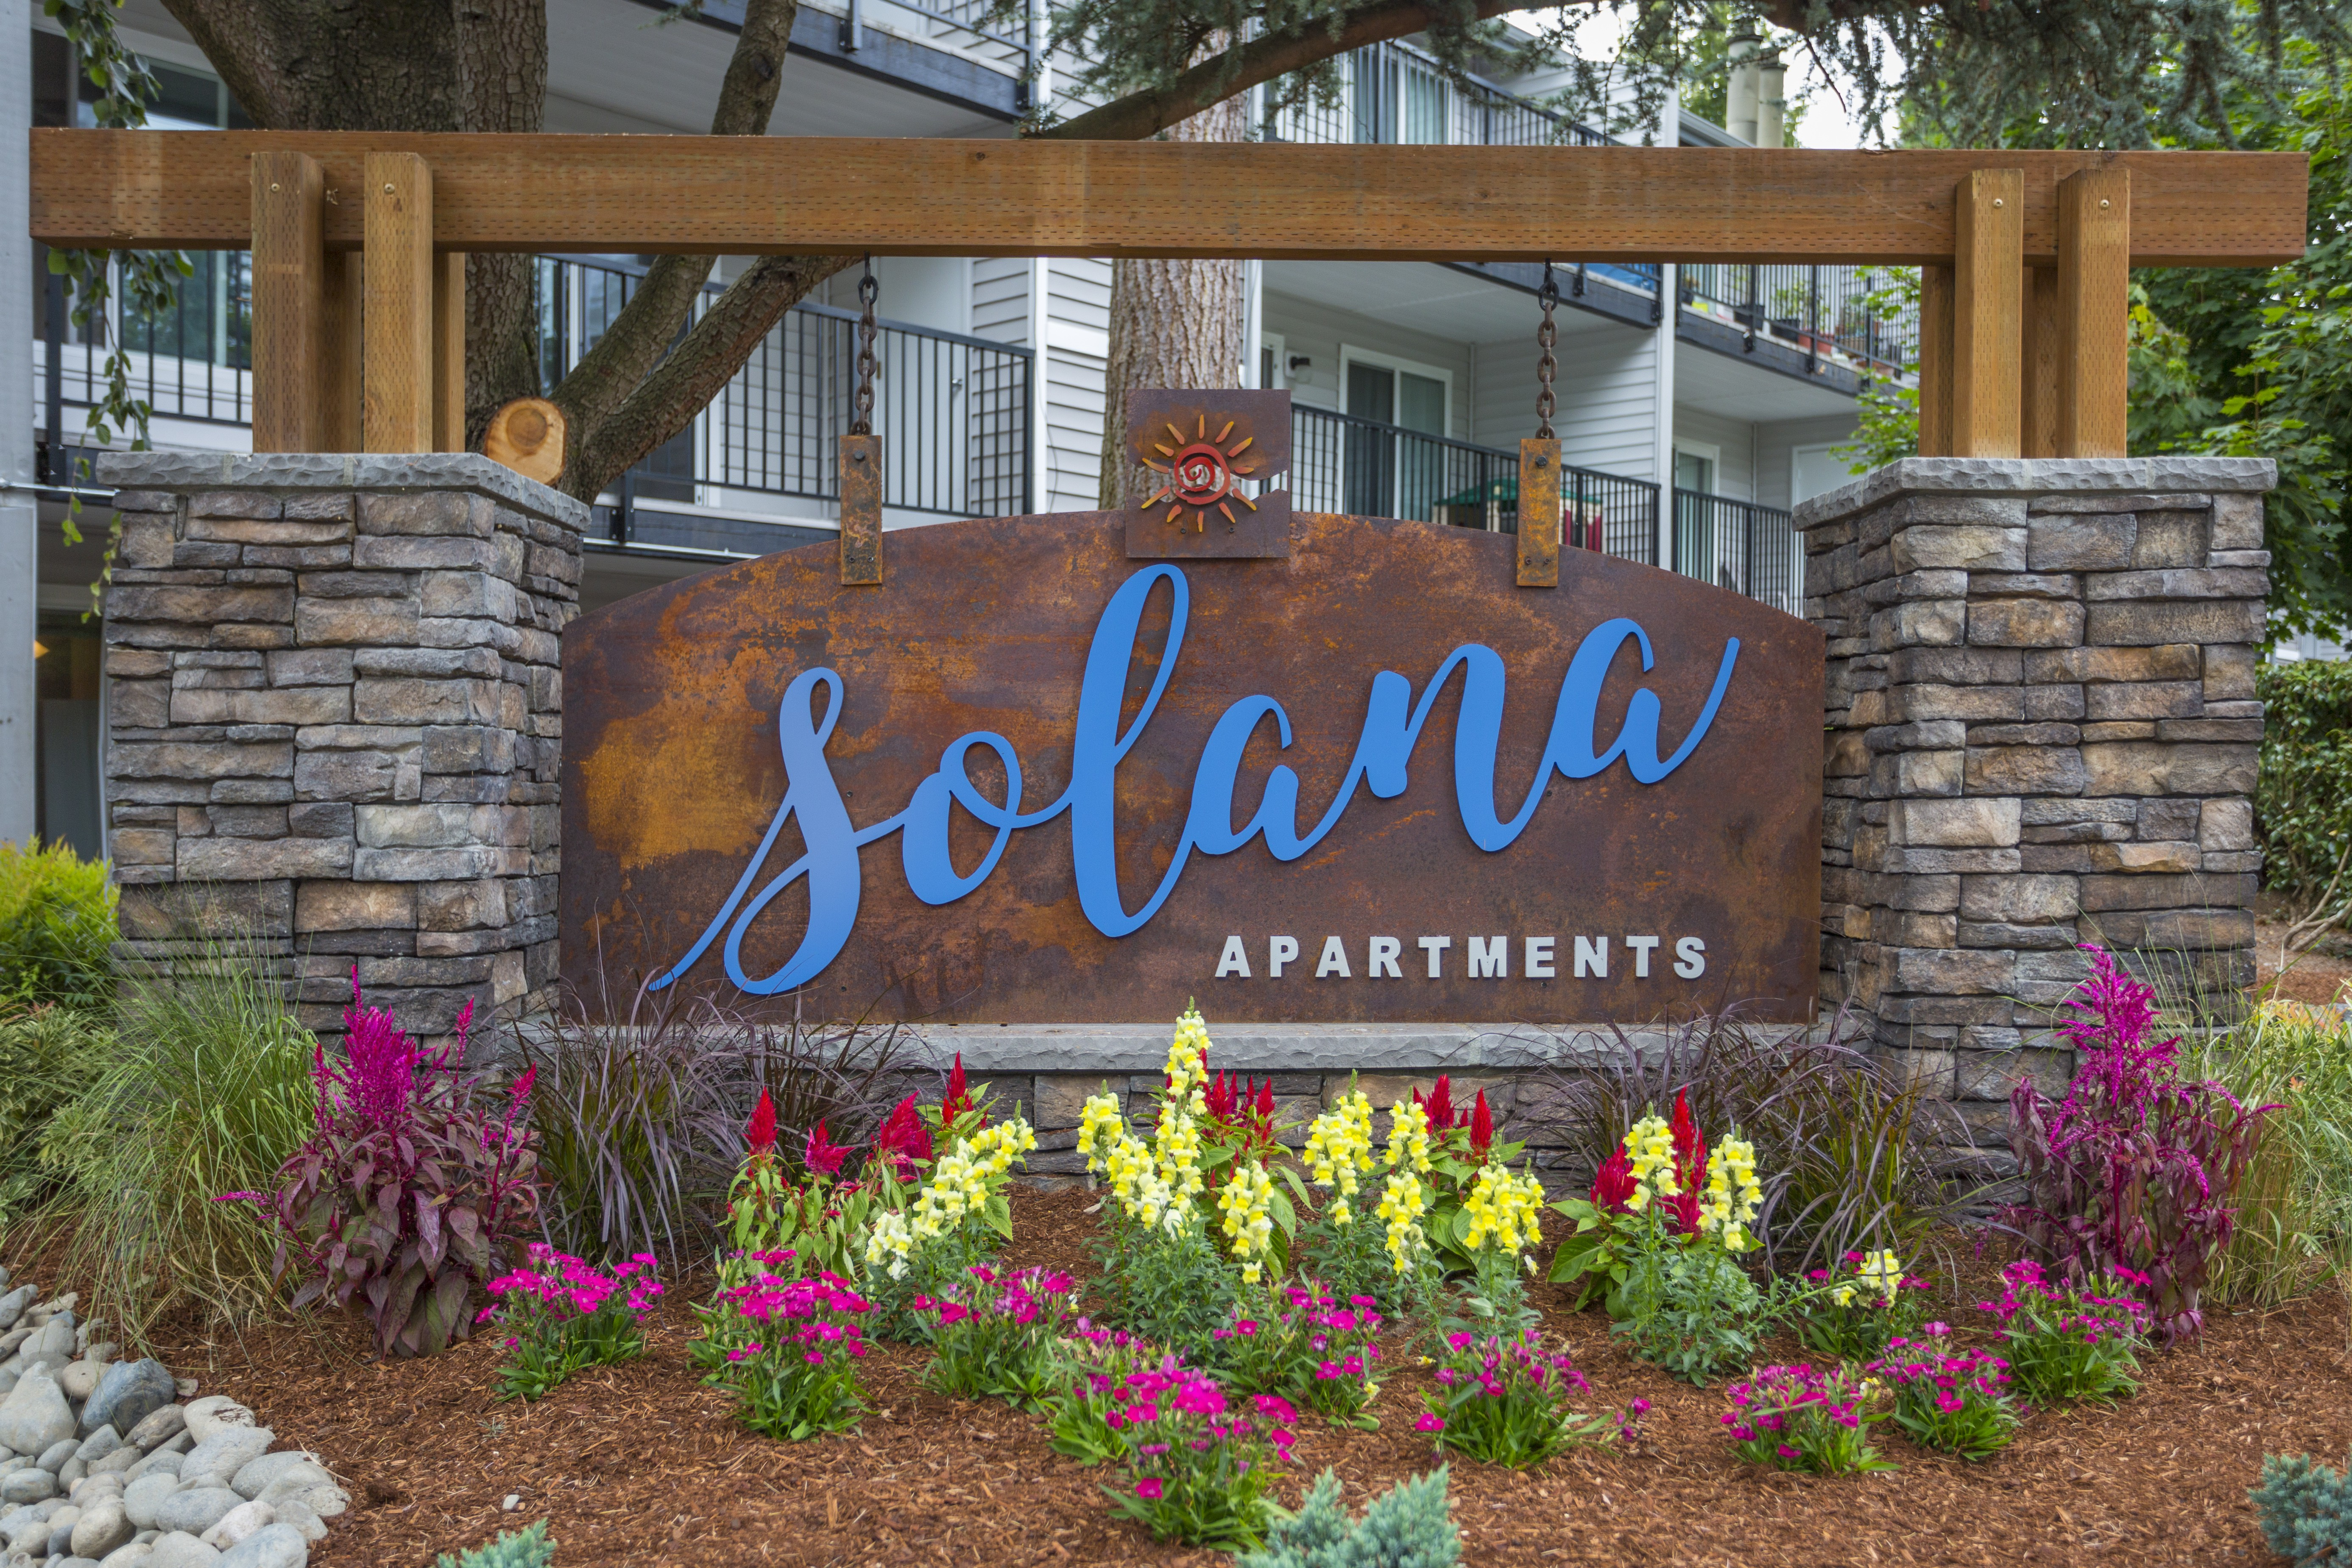 Apartments Near RTC Solana Apartments for Renton Technical College Students in Renton, WA